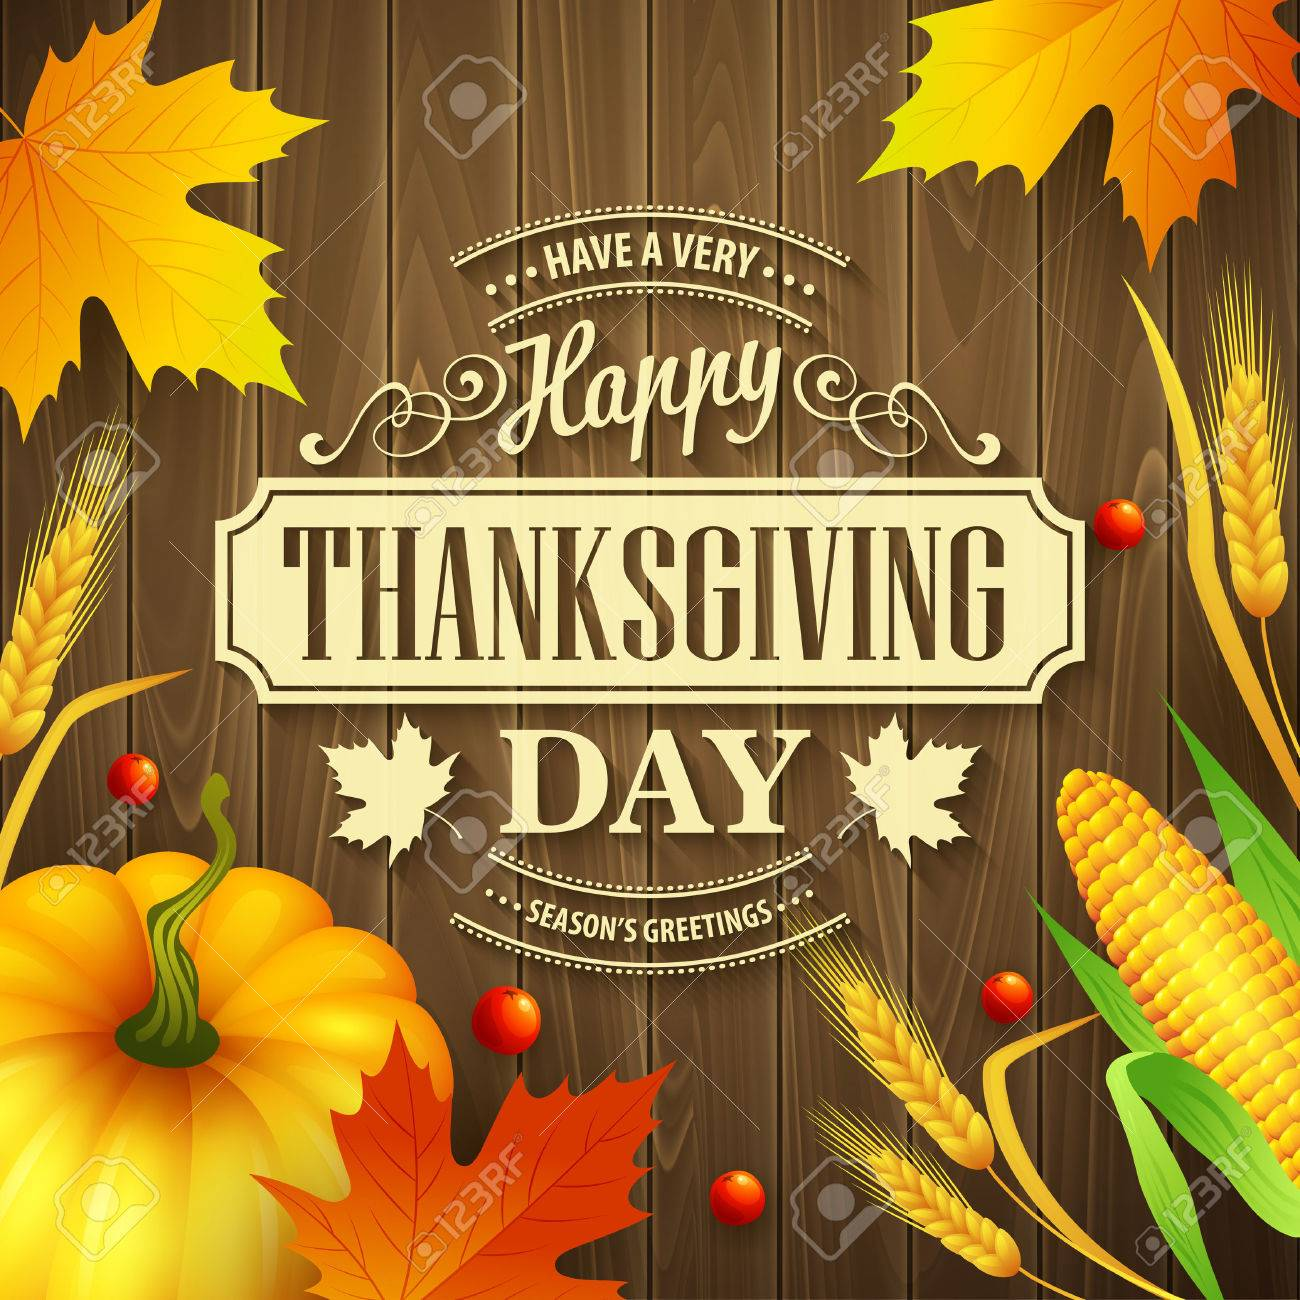 thanksgiving background images.html